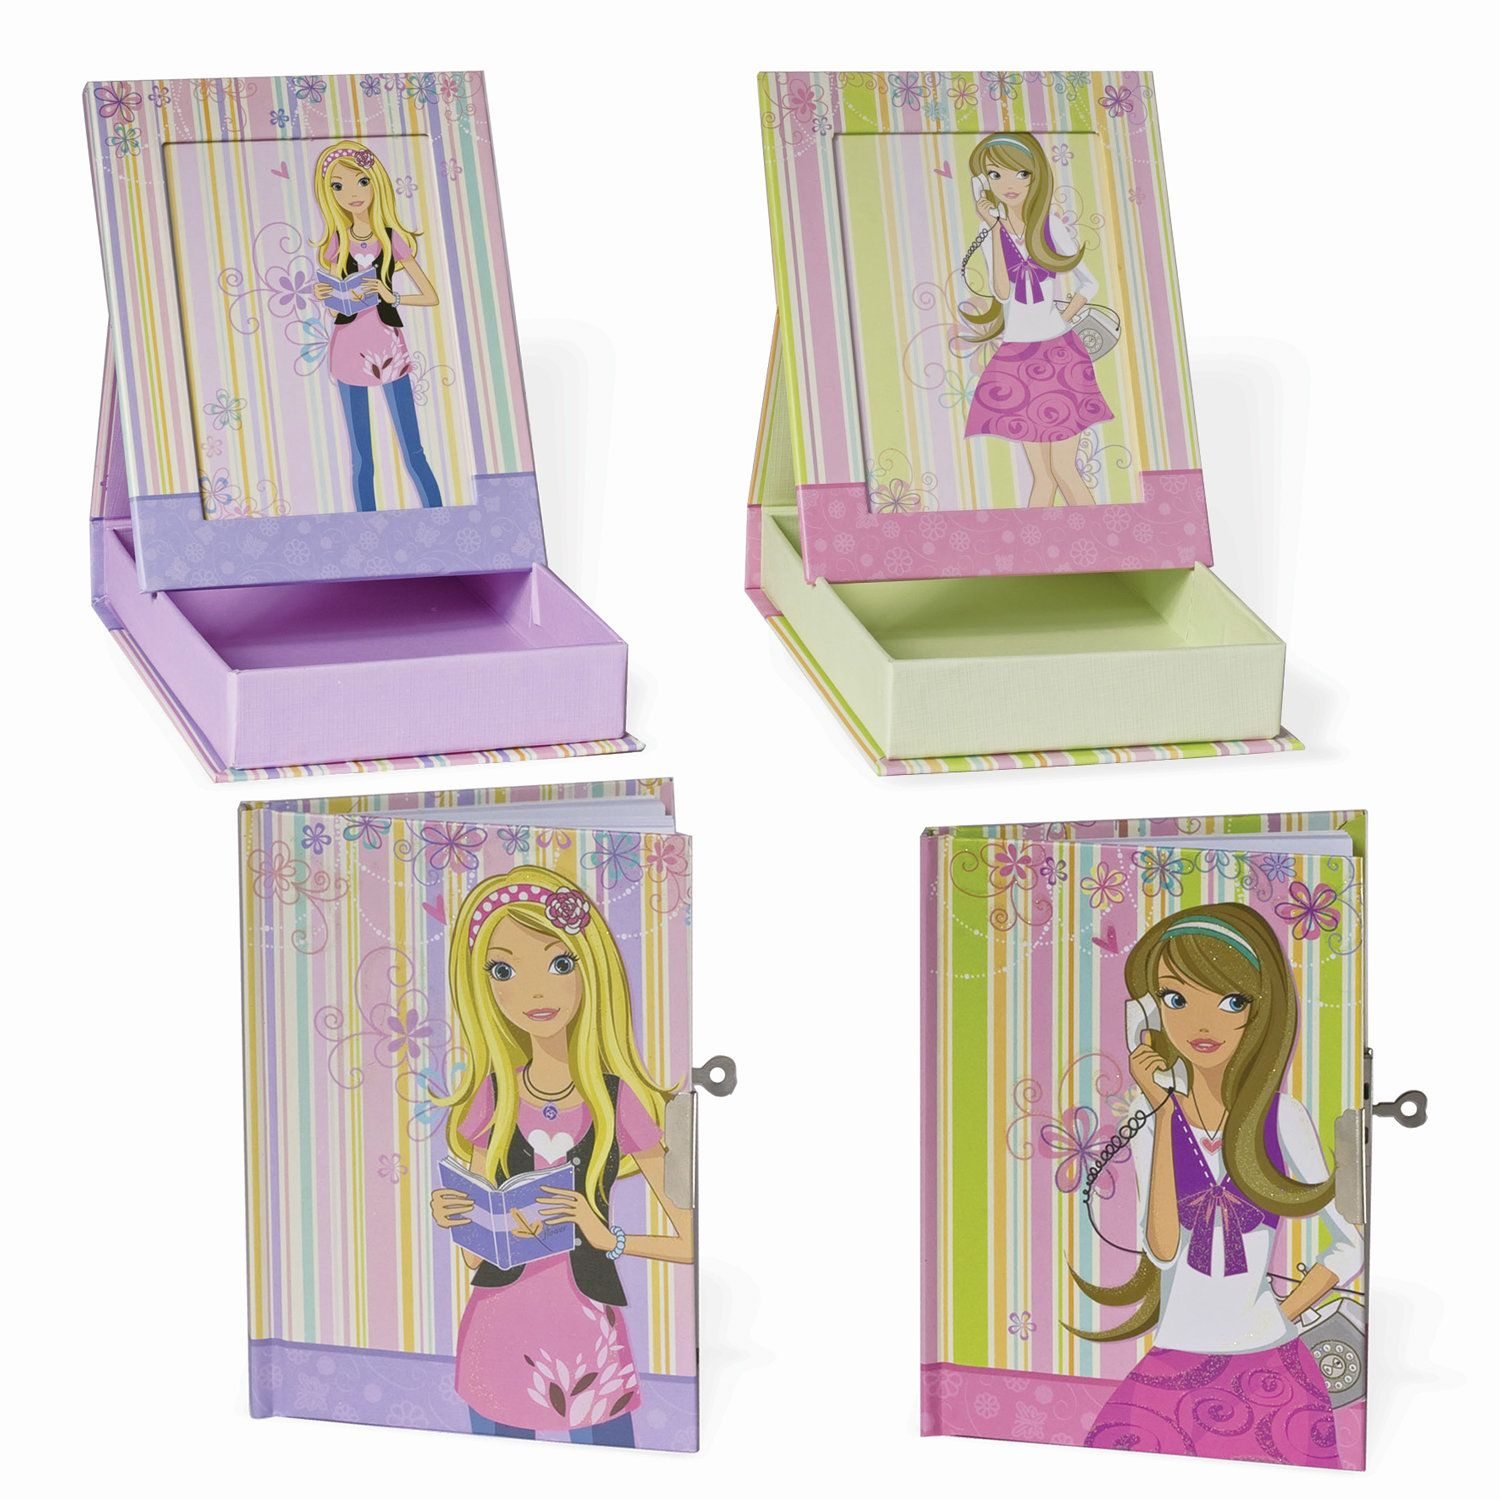 """BRAUBERG / Notebook """"Girl"""" SMALL FORMAT 56 sheets A6, 120x160 mm, hardcover, metal lock, sequins, photo frame, line"""